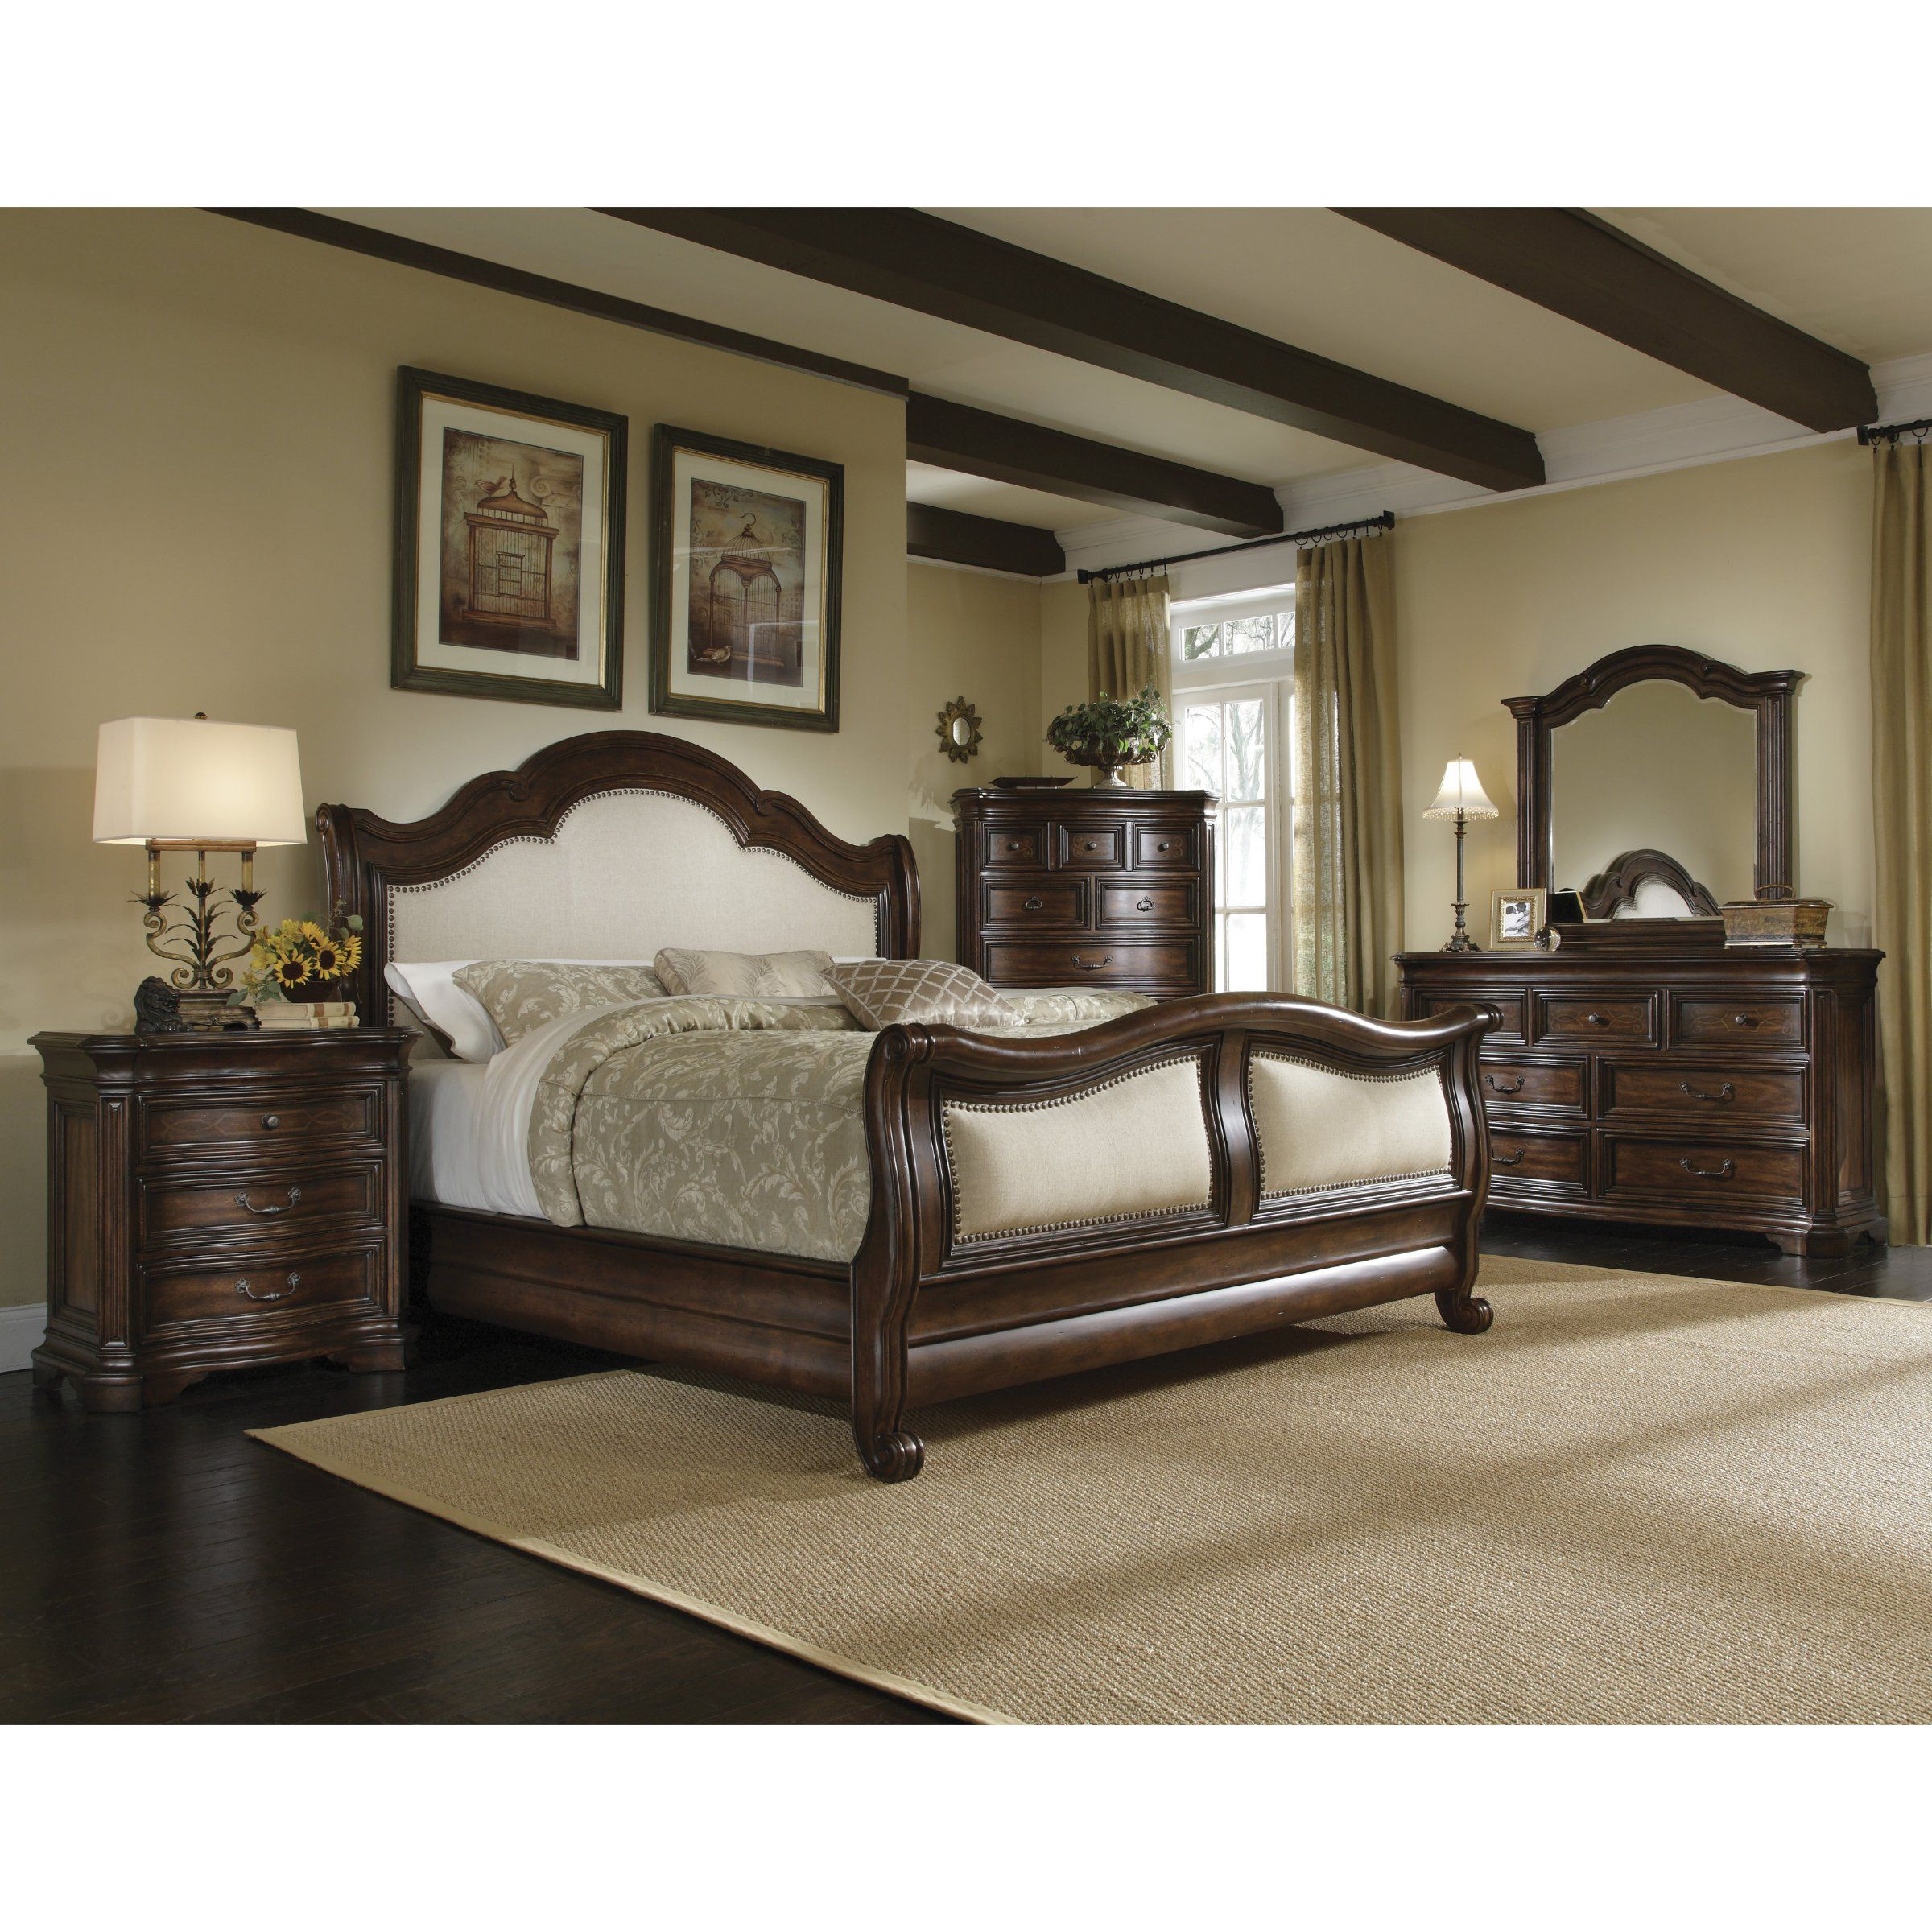 A.R.T. Furniture Coronado Collection Sleigh Bed Set from